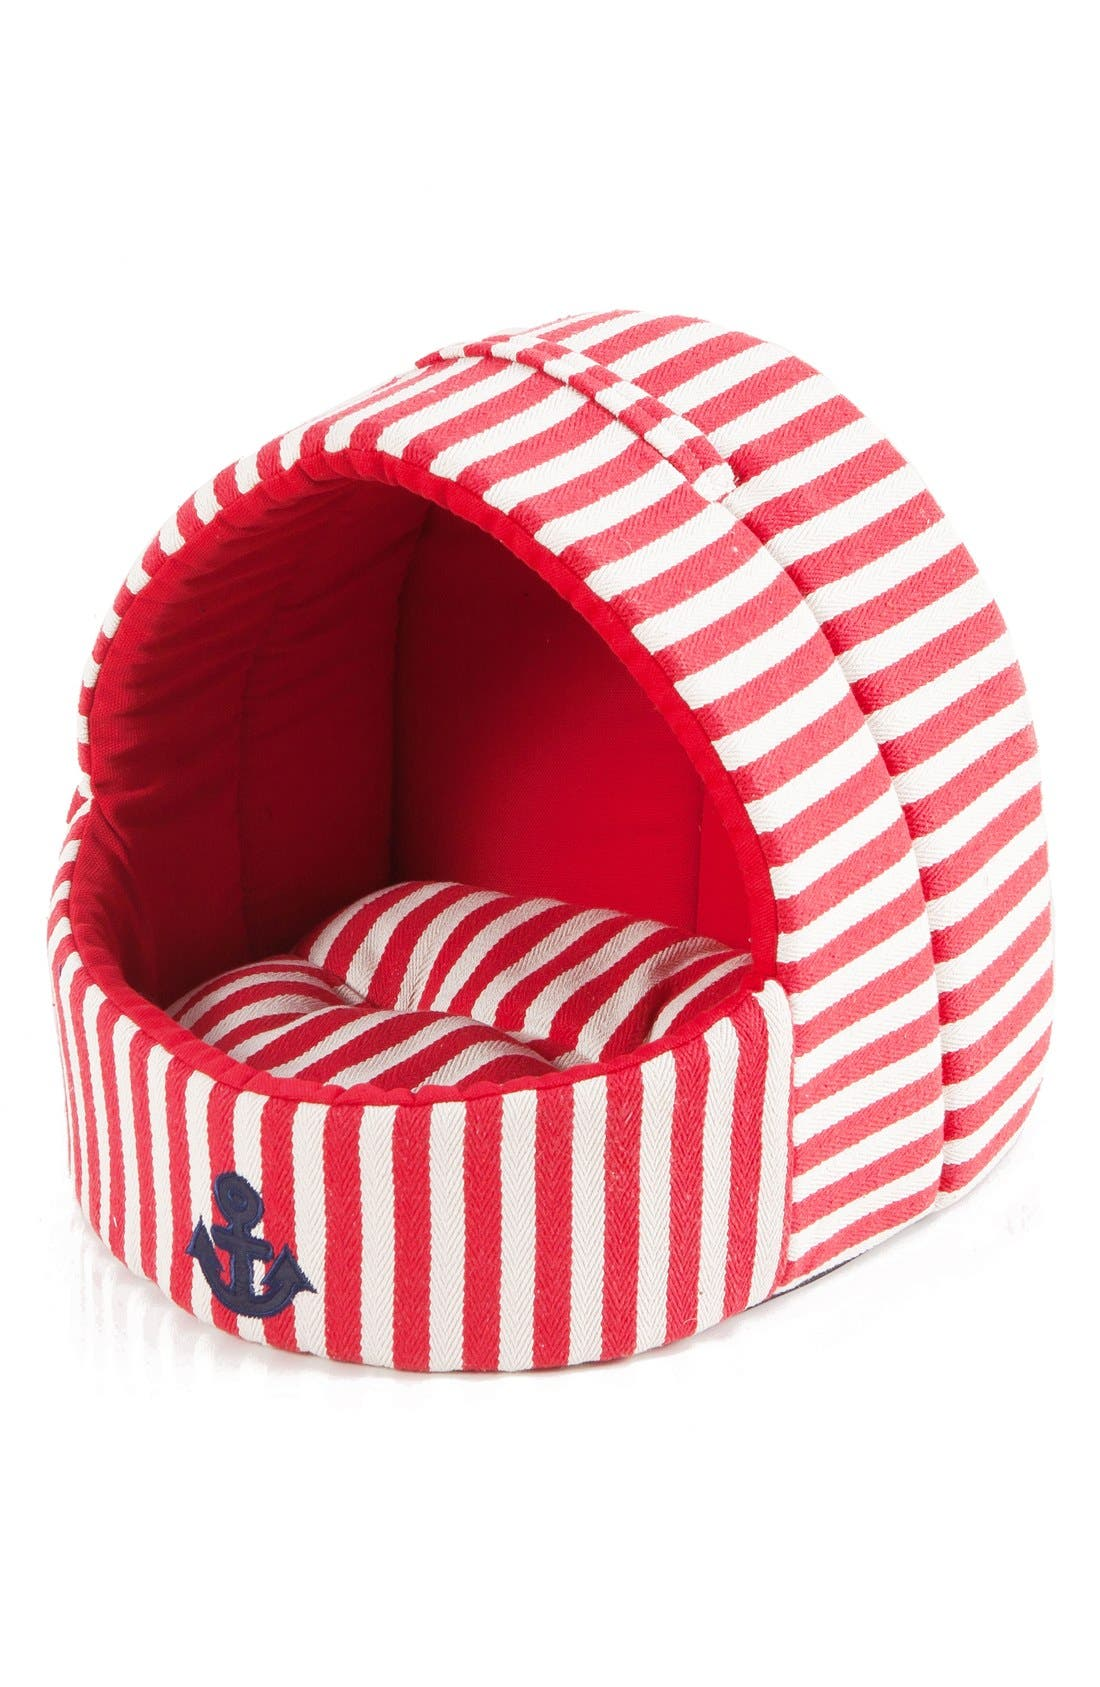 Main Image - Duck River Textile Dante Stripe Pet House